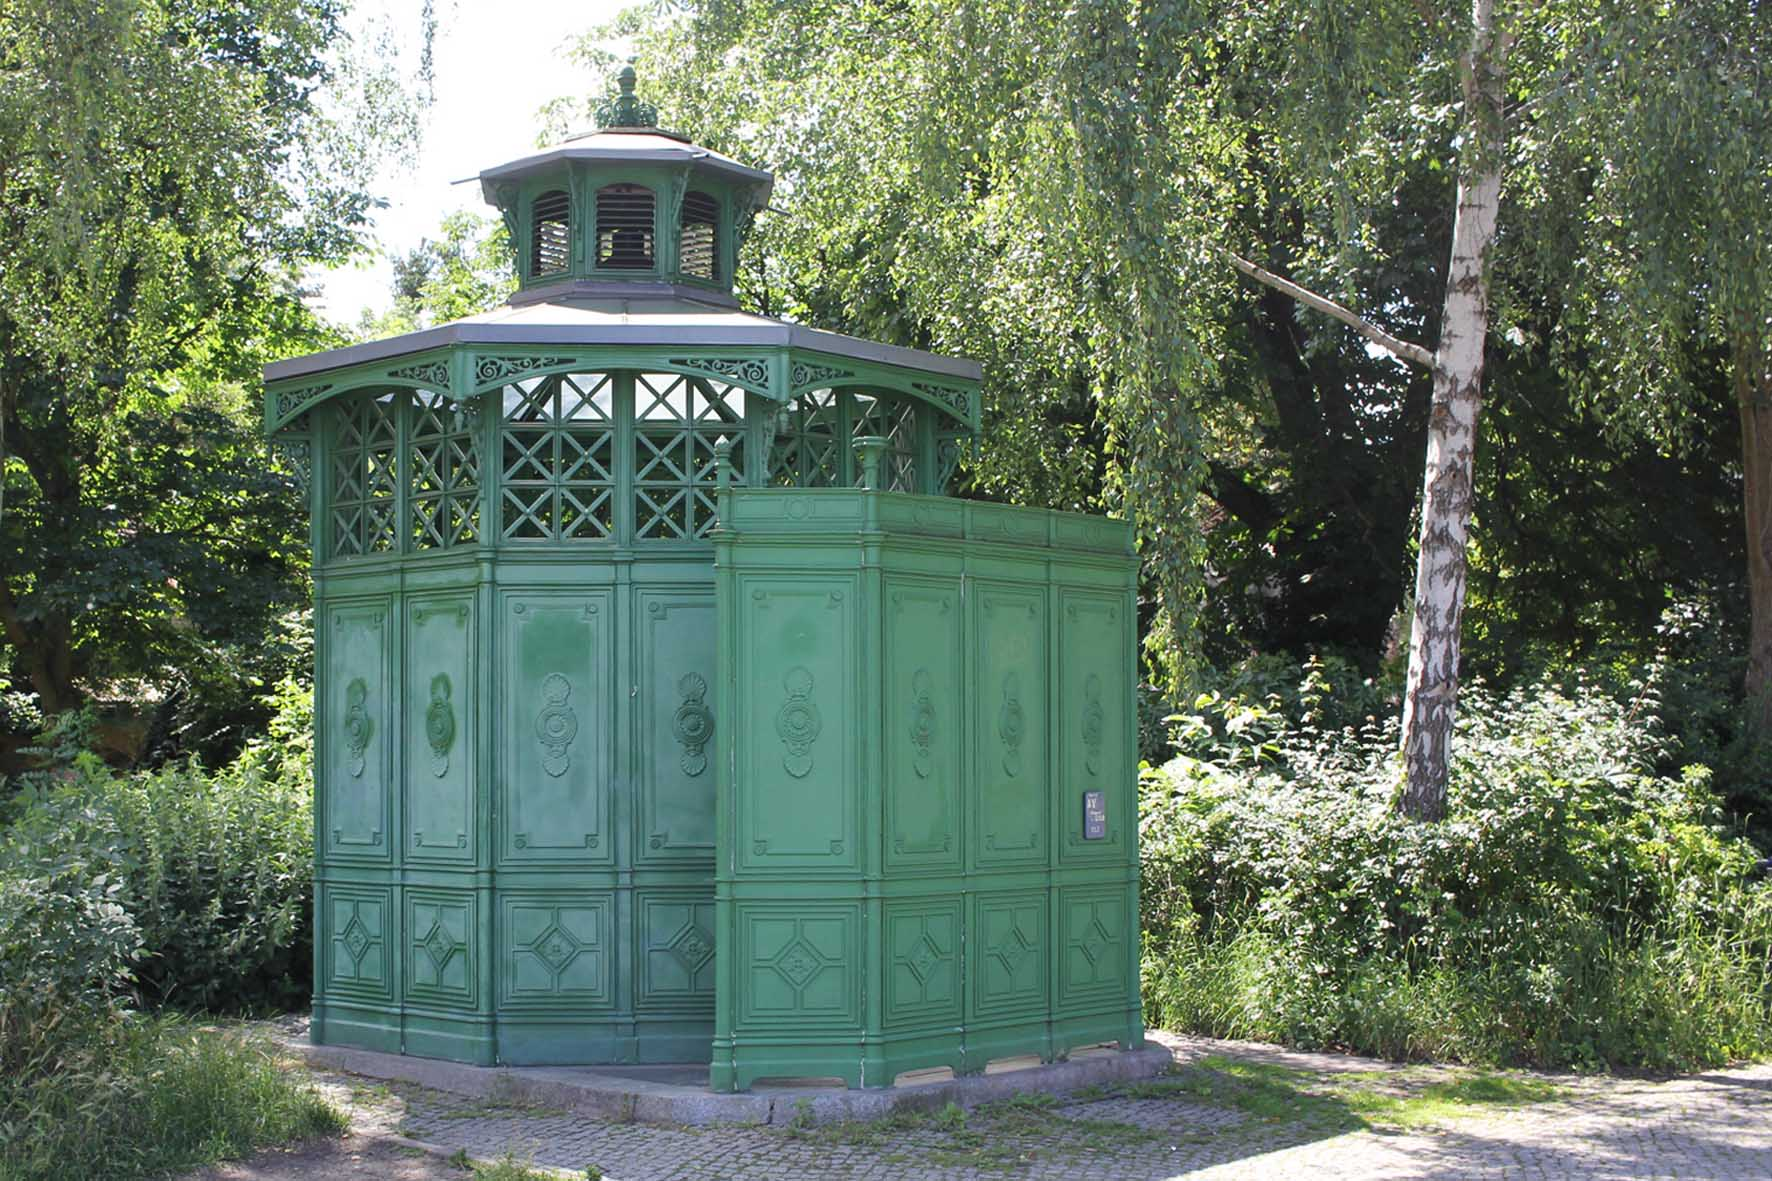 Café Achteck - Alt-Mariendorf - an example of Berlin's classic 19th century green cast iron public toilets